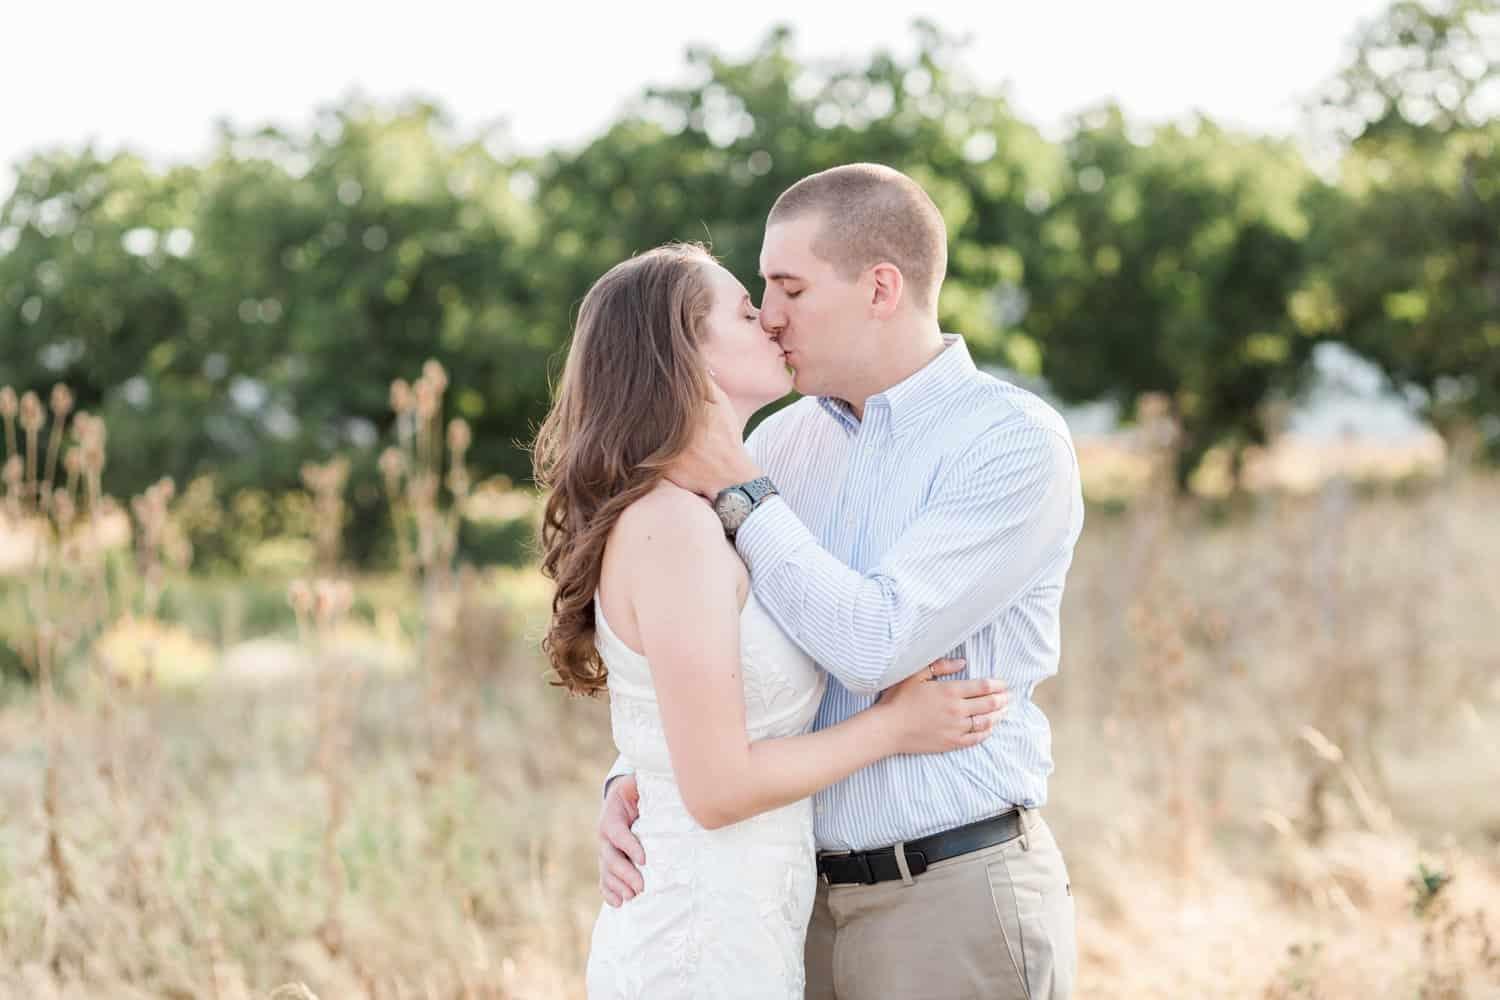 Portland couple kisses during their engagement session in an open field.